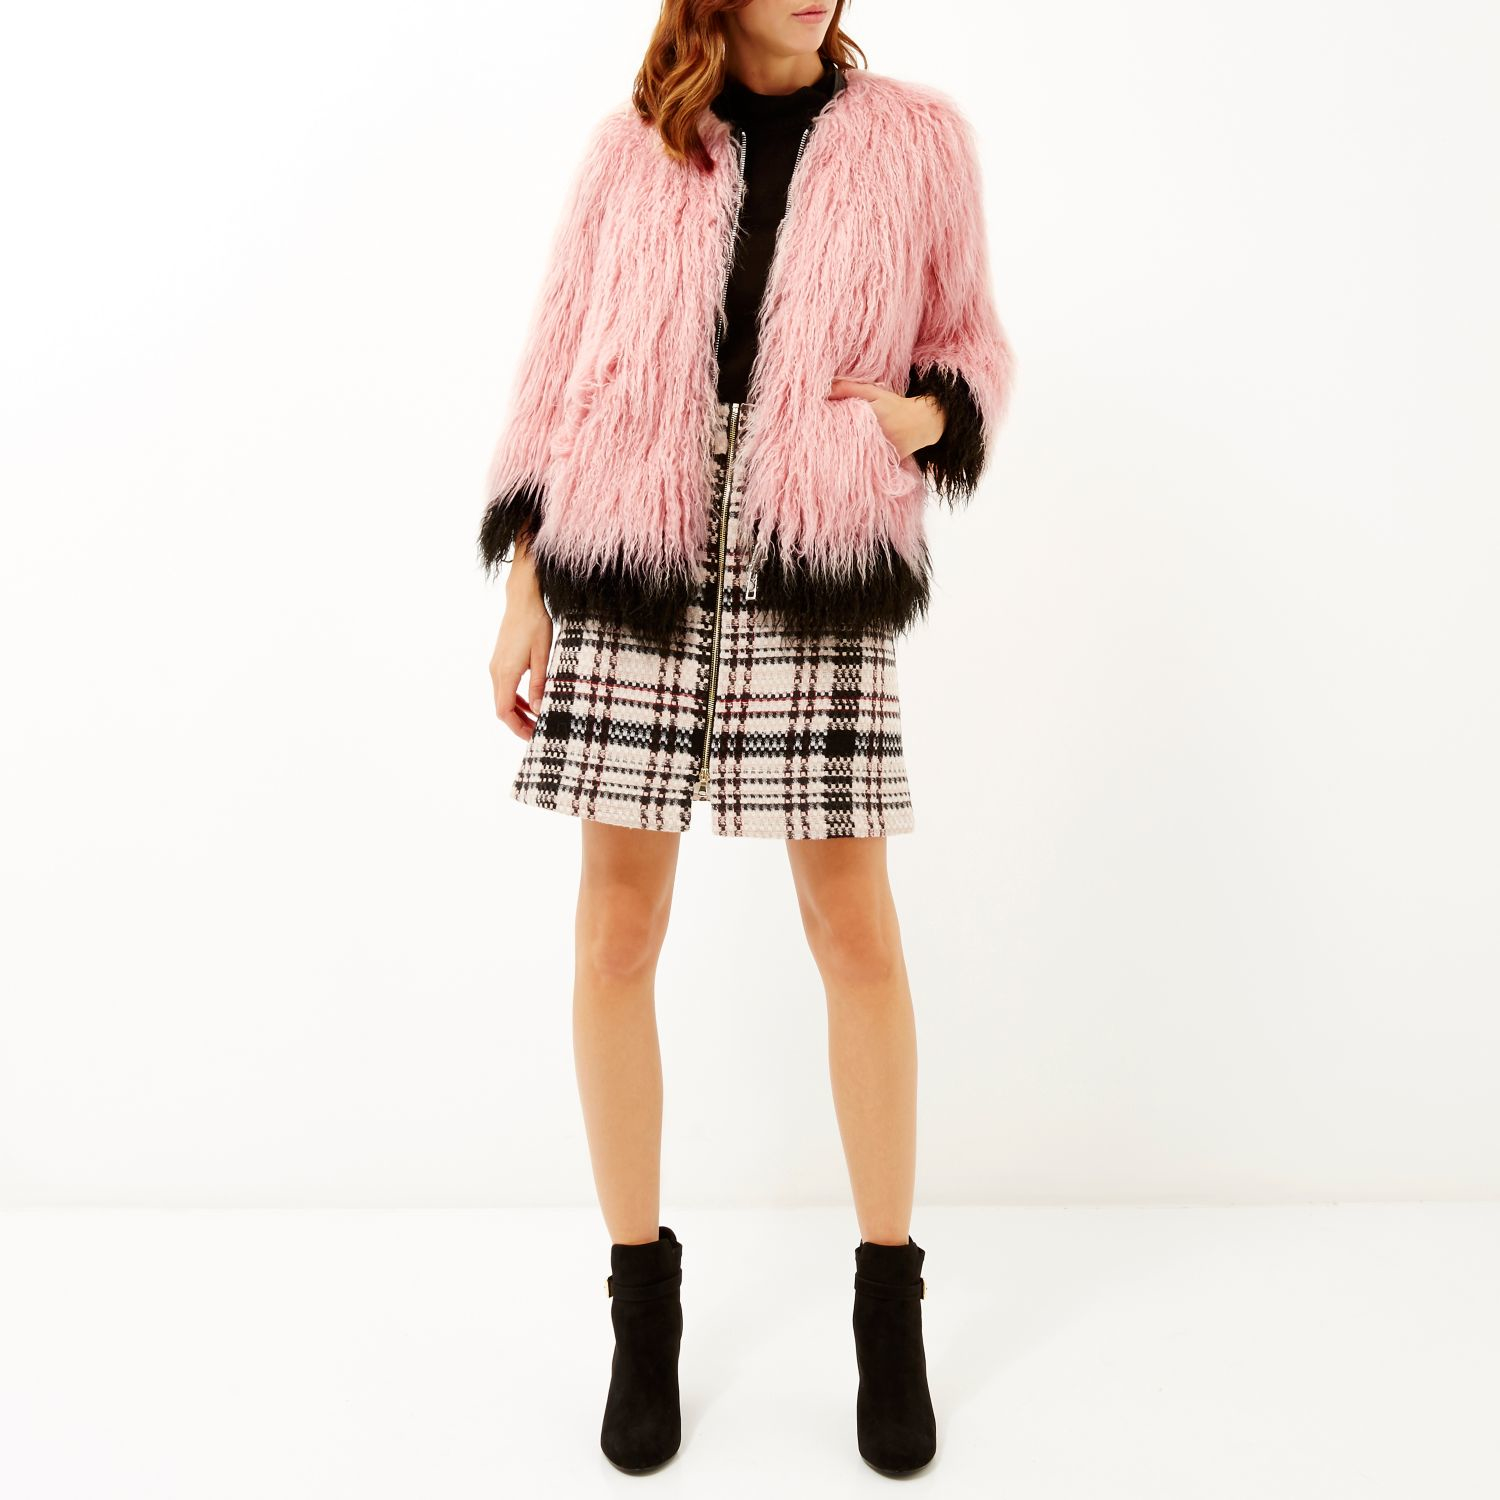 1c19cac6ece2 River Island Light Pink Premium Faux Fur Coat in Pink - Lyst